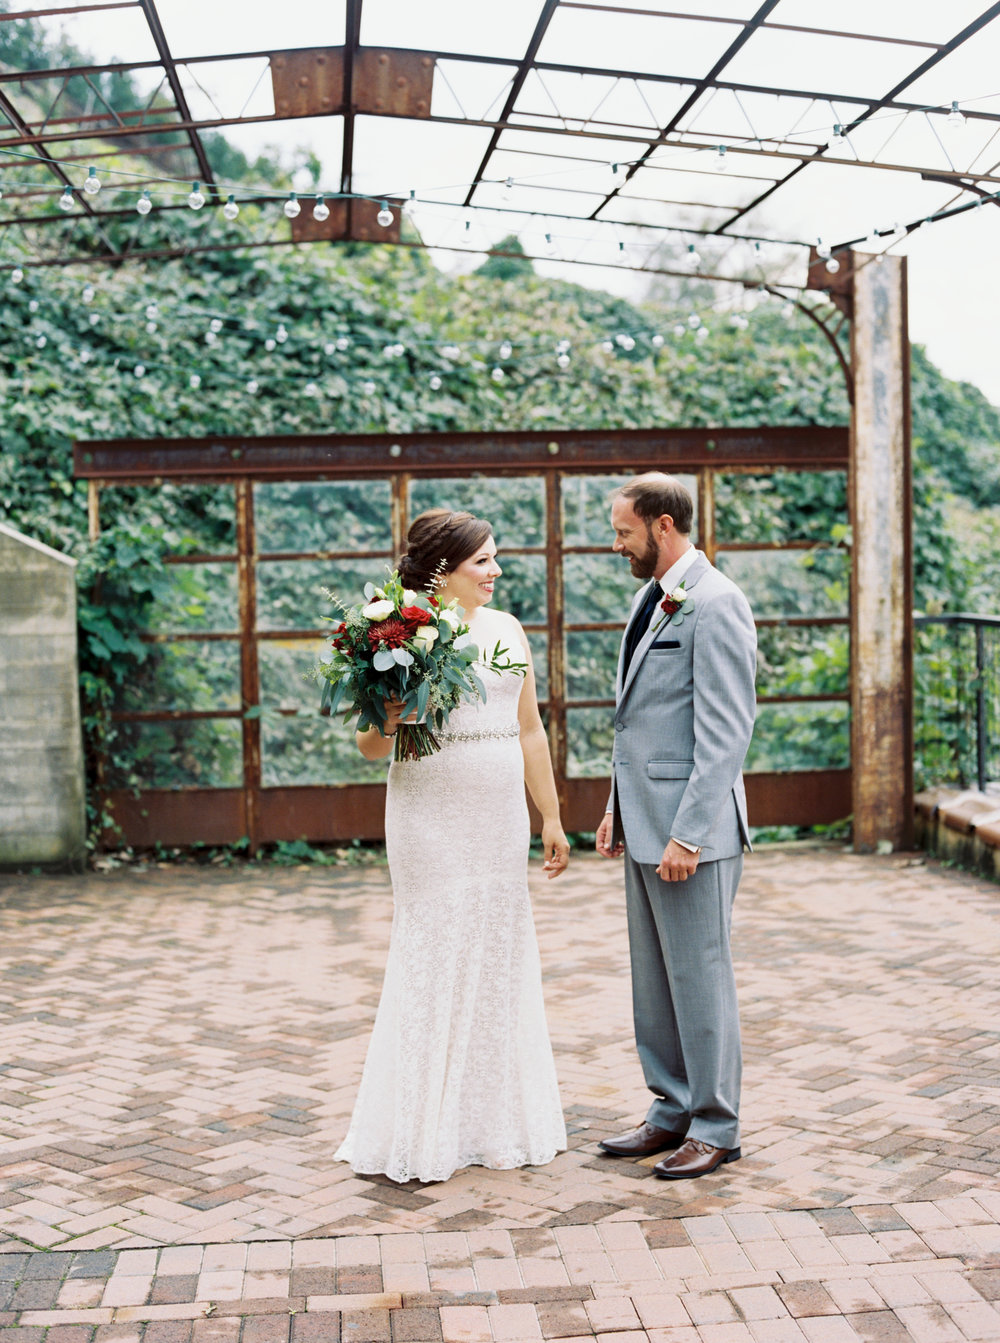 Jessica_Bryan_Wedding_Standard_Knoxville_Abigail_Malone_Photography-179.jpg